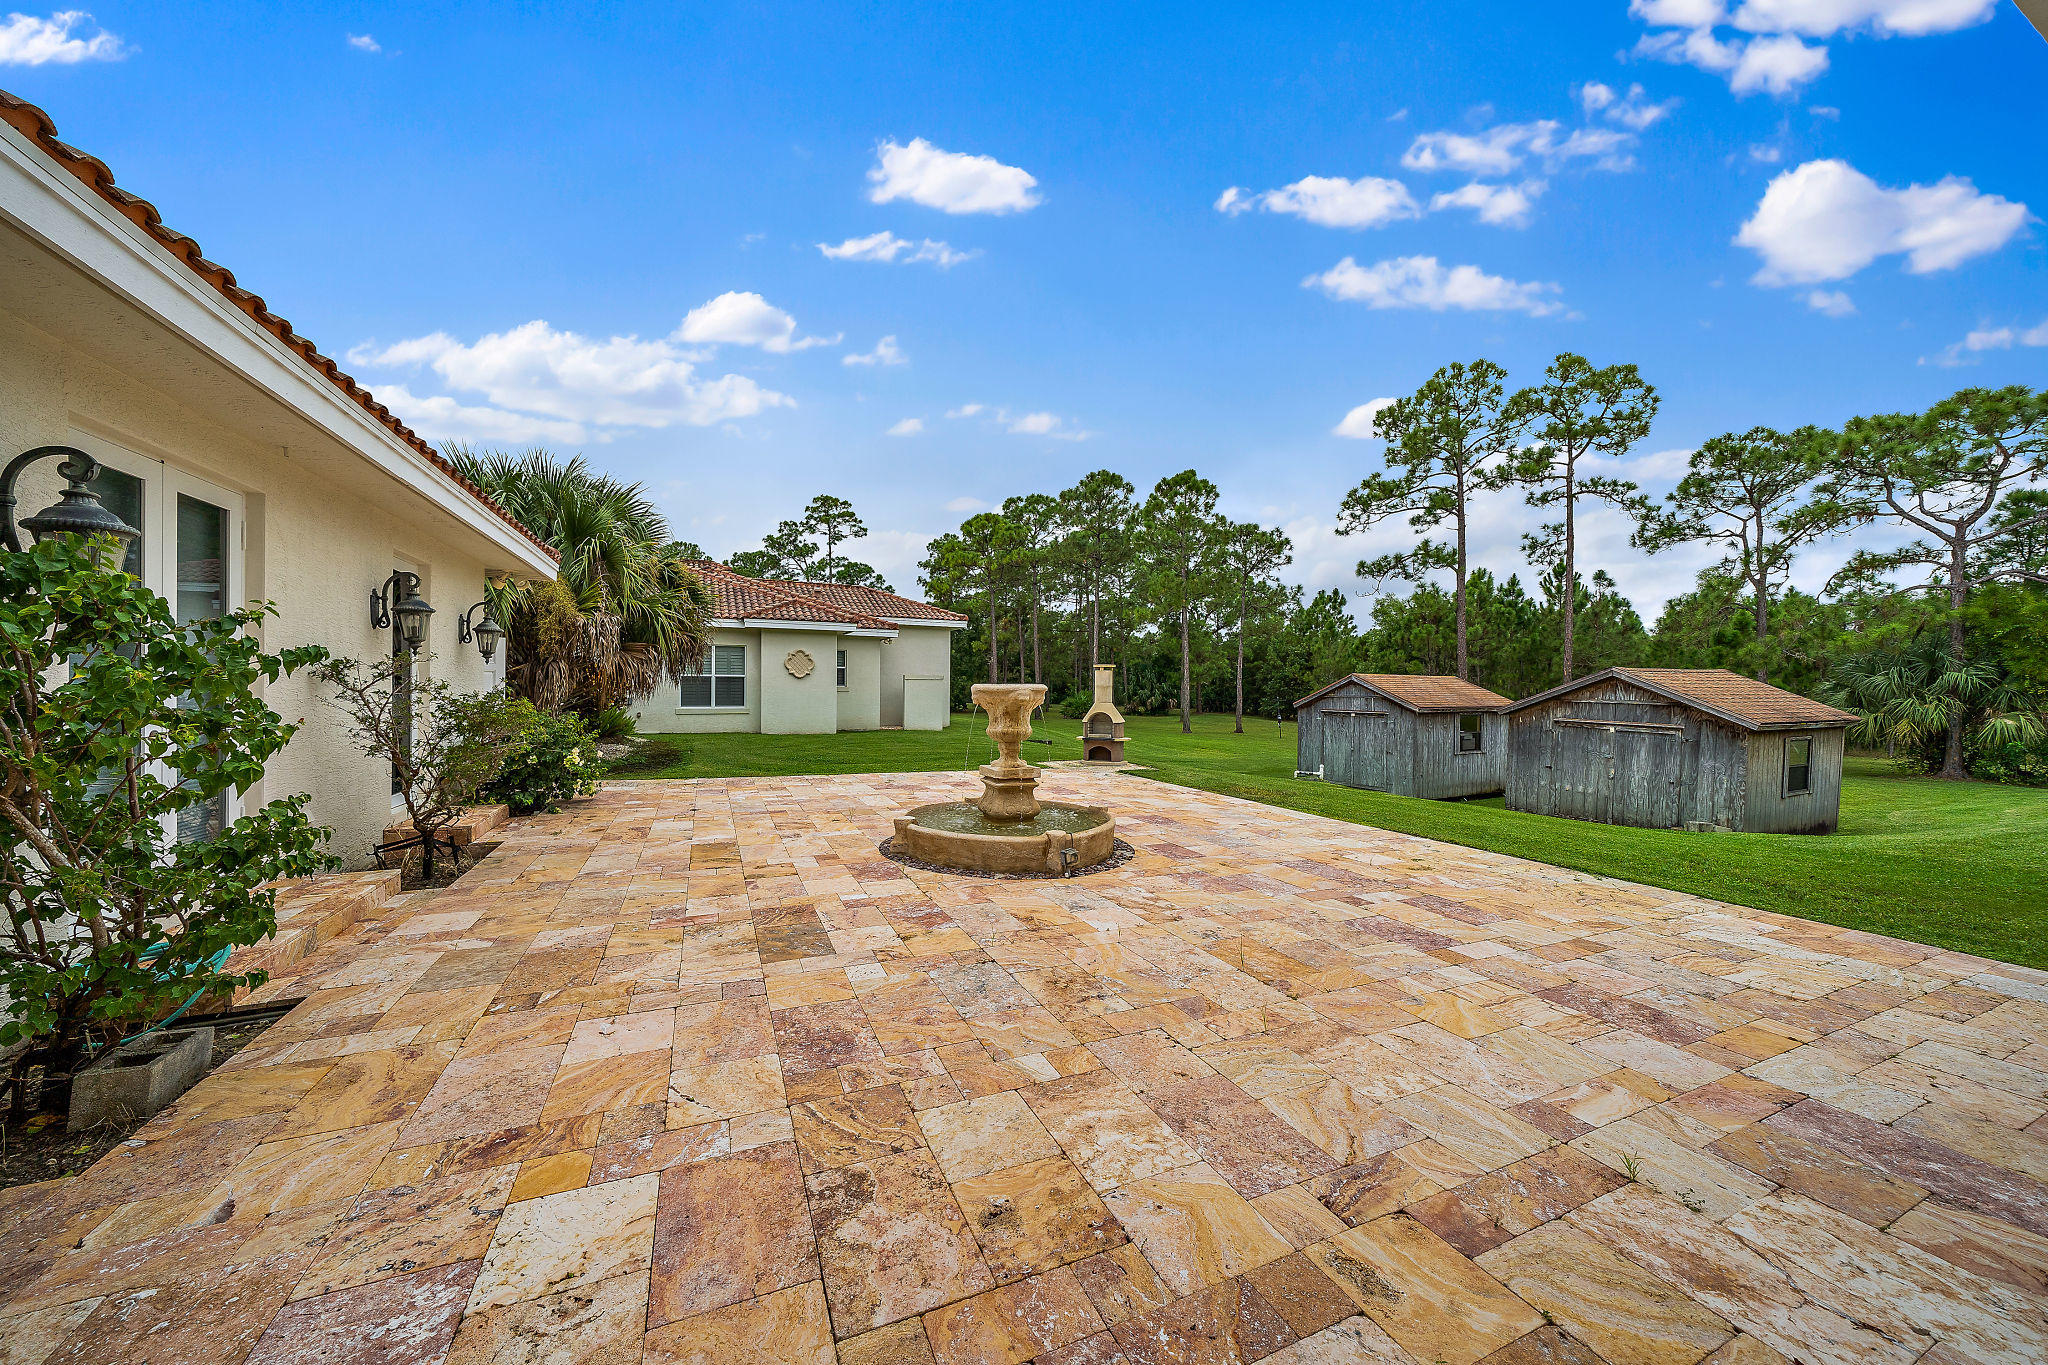 Add'l Patio with Fountain & Fire Pit